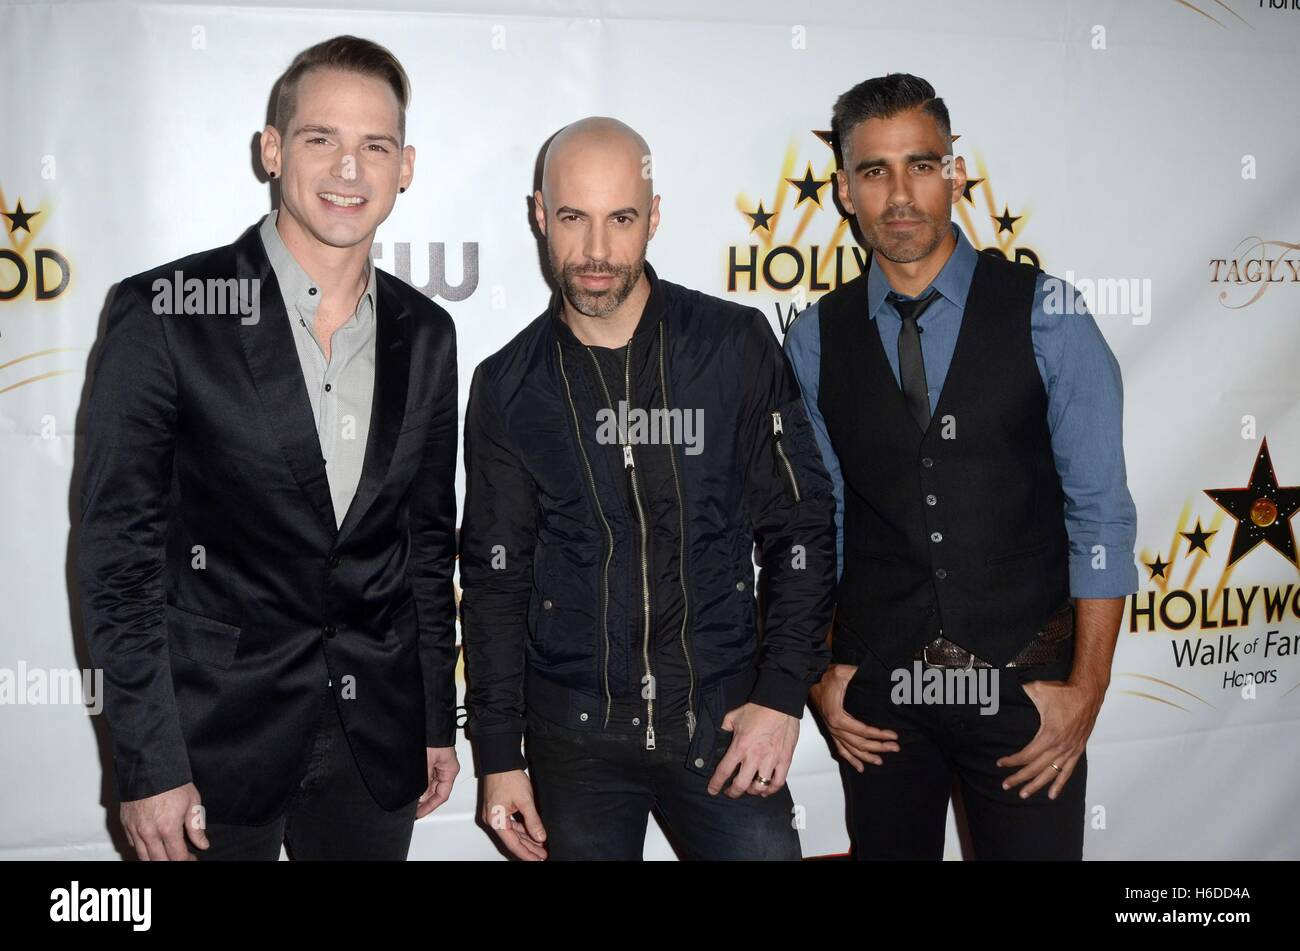 Los Angeles, CA, USA. 25th Oct, 2016. Daughtry member, Chris Daughtry, another Daughtry band member at arrivals - Stock Image